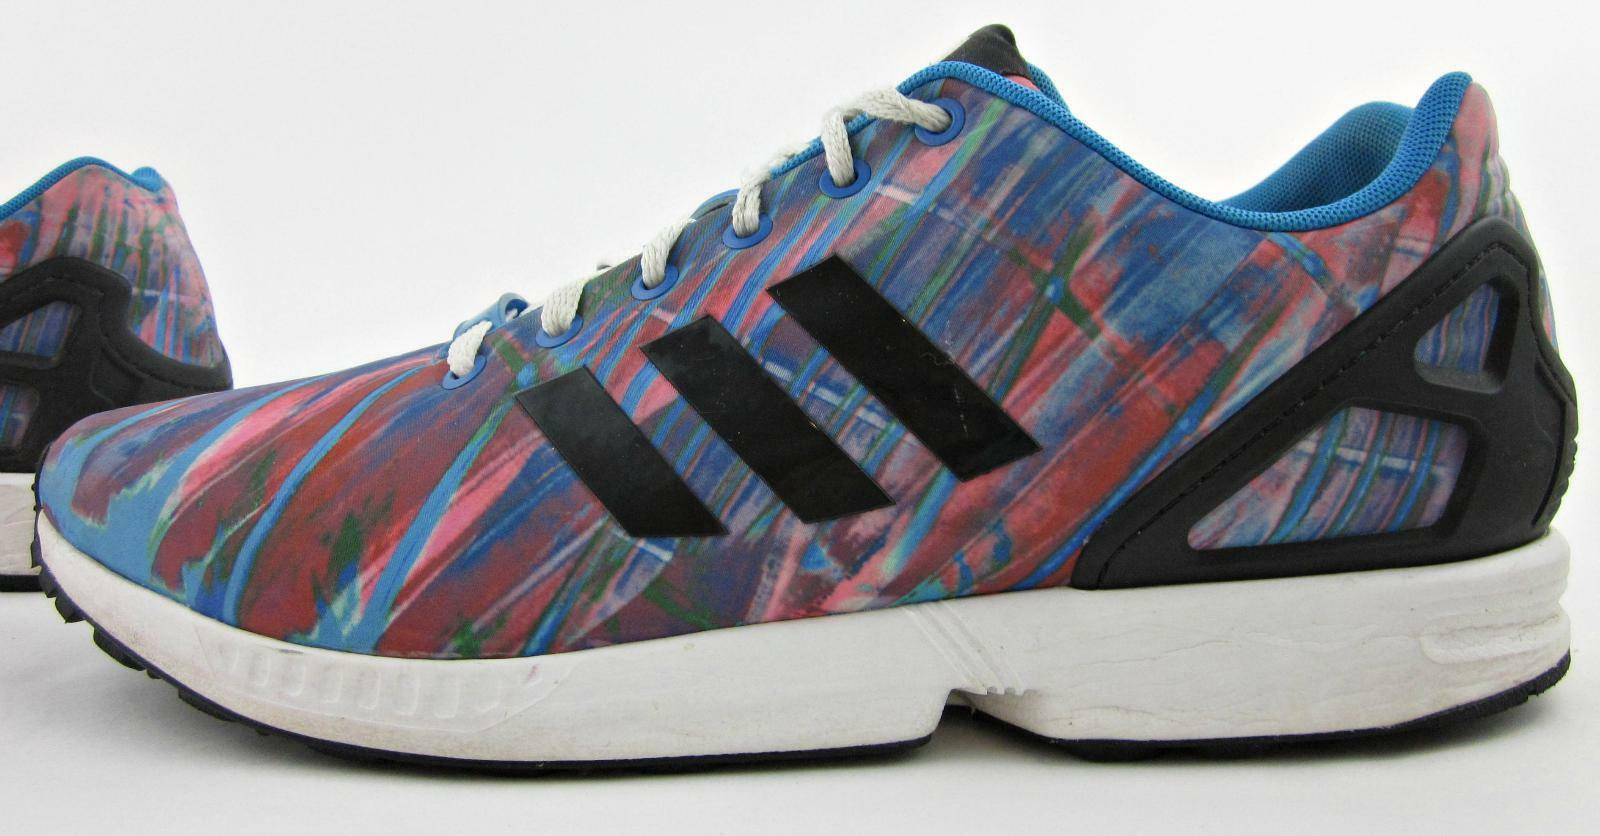 Adidas ZX Flux Mens Mens Mens Fitness Running shoes Multi  Paint  Print US 12.5 40a816